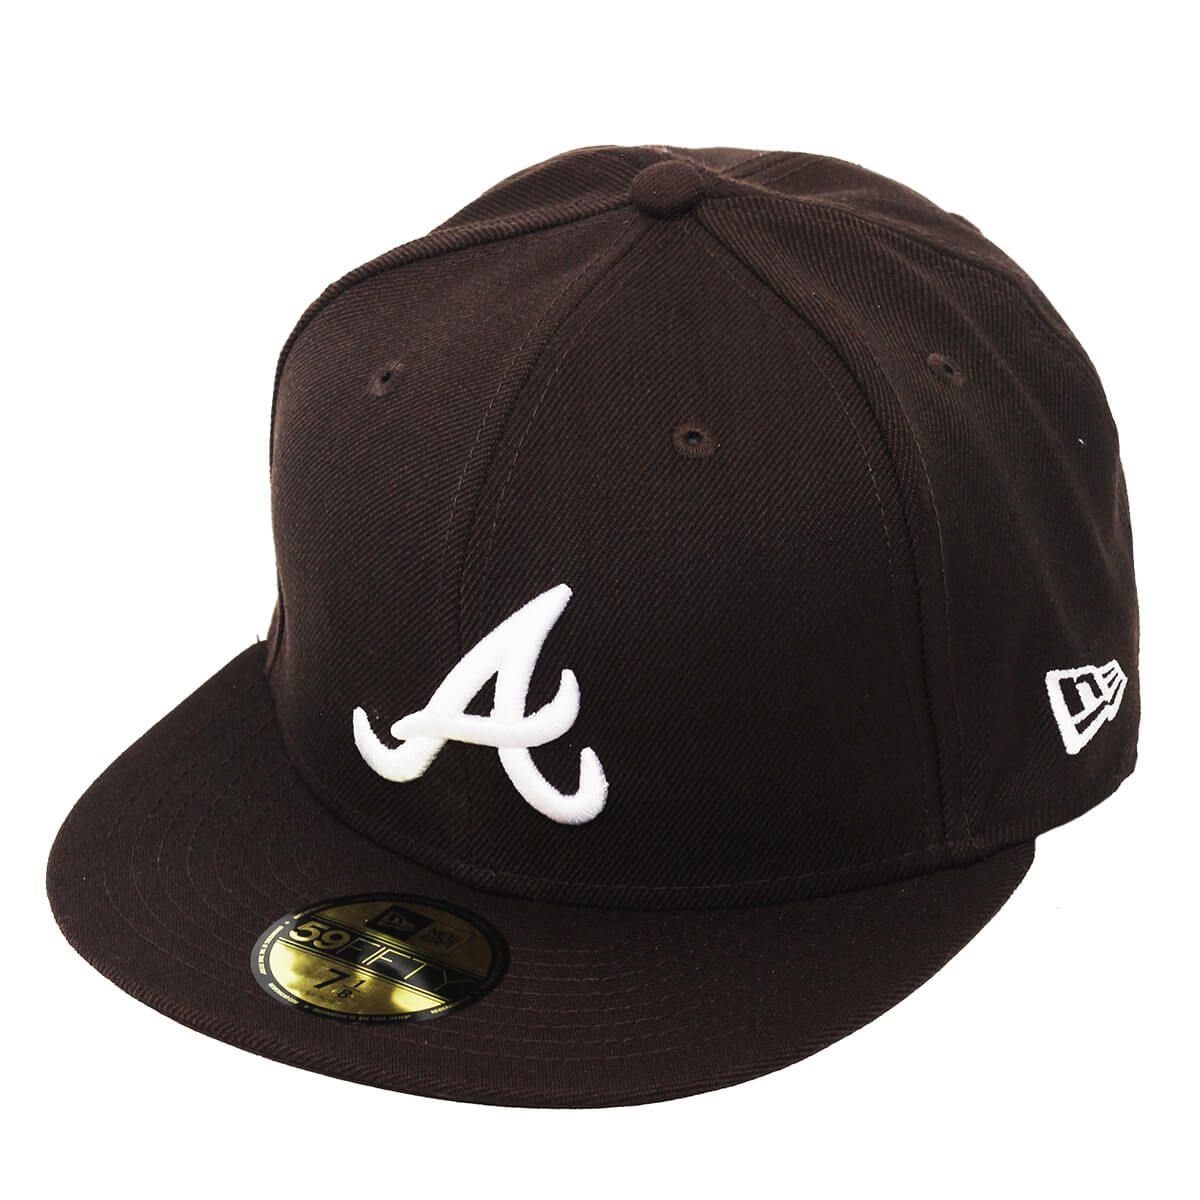 Boné New Era Aba Reta 5950 MLB Atlanta Basic Colors Marrom